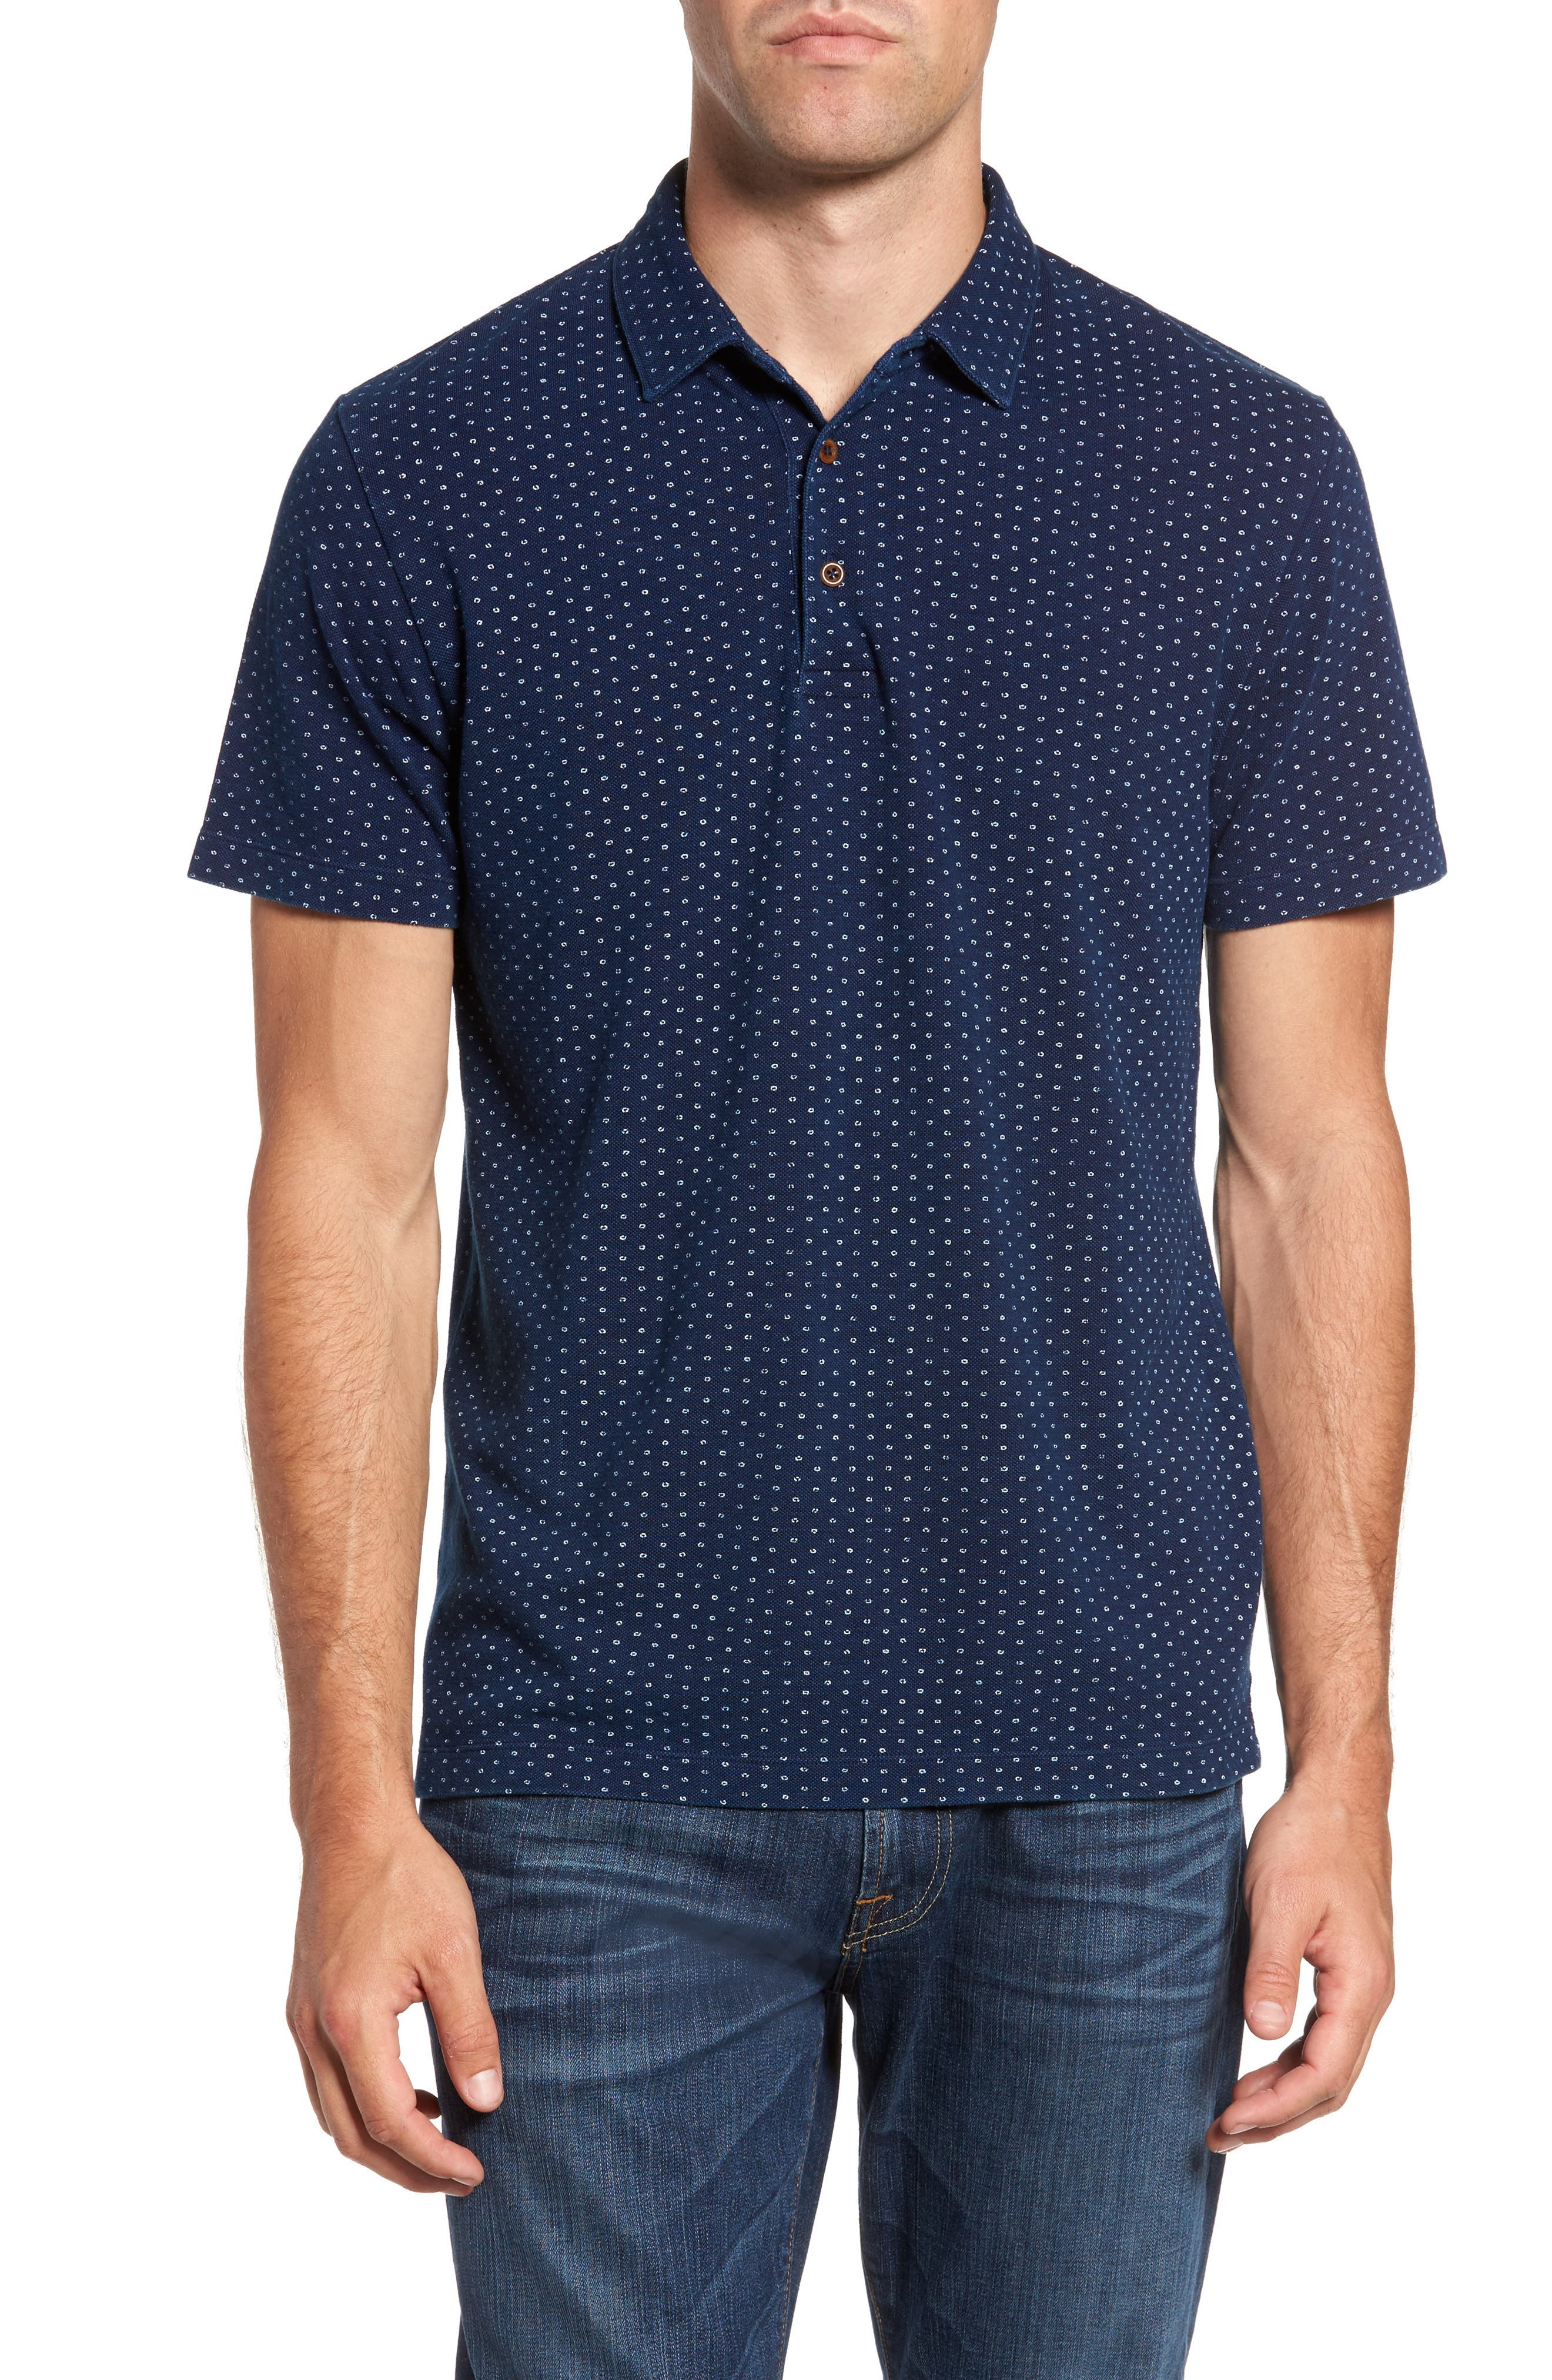 Alternate Image 1 Selected - French Connection Dojo Dot Regular Fit Cotton Polo